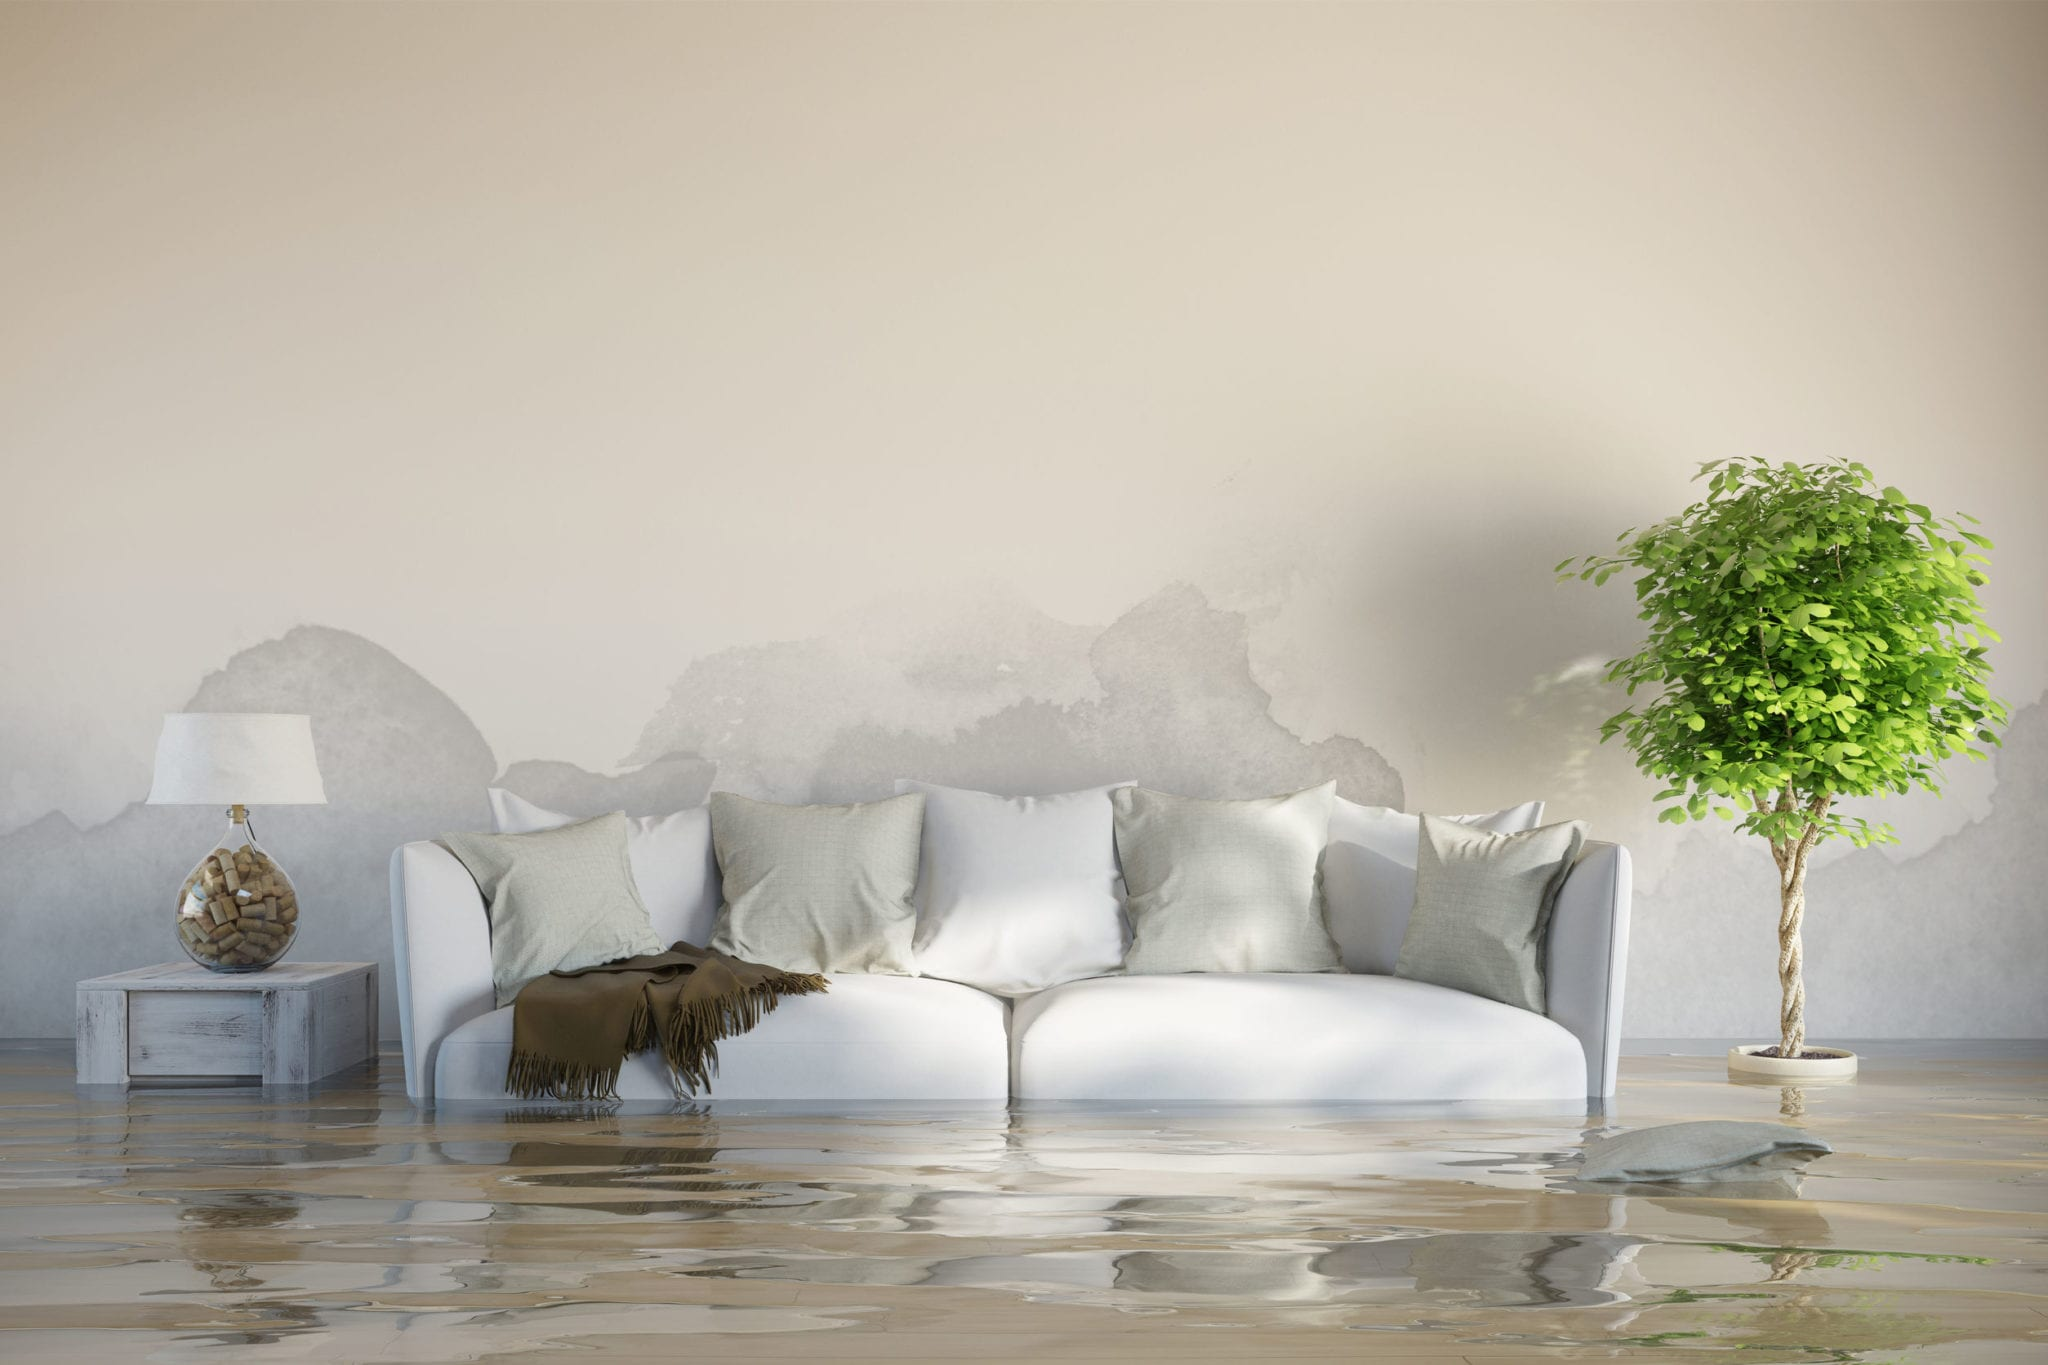 Your House Has Flooded -- What Texans Should Do